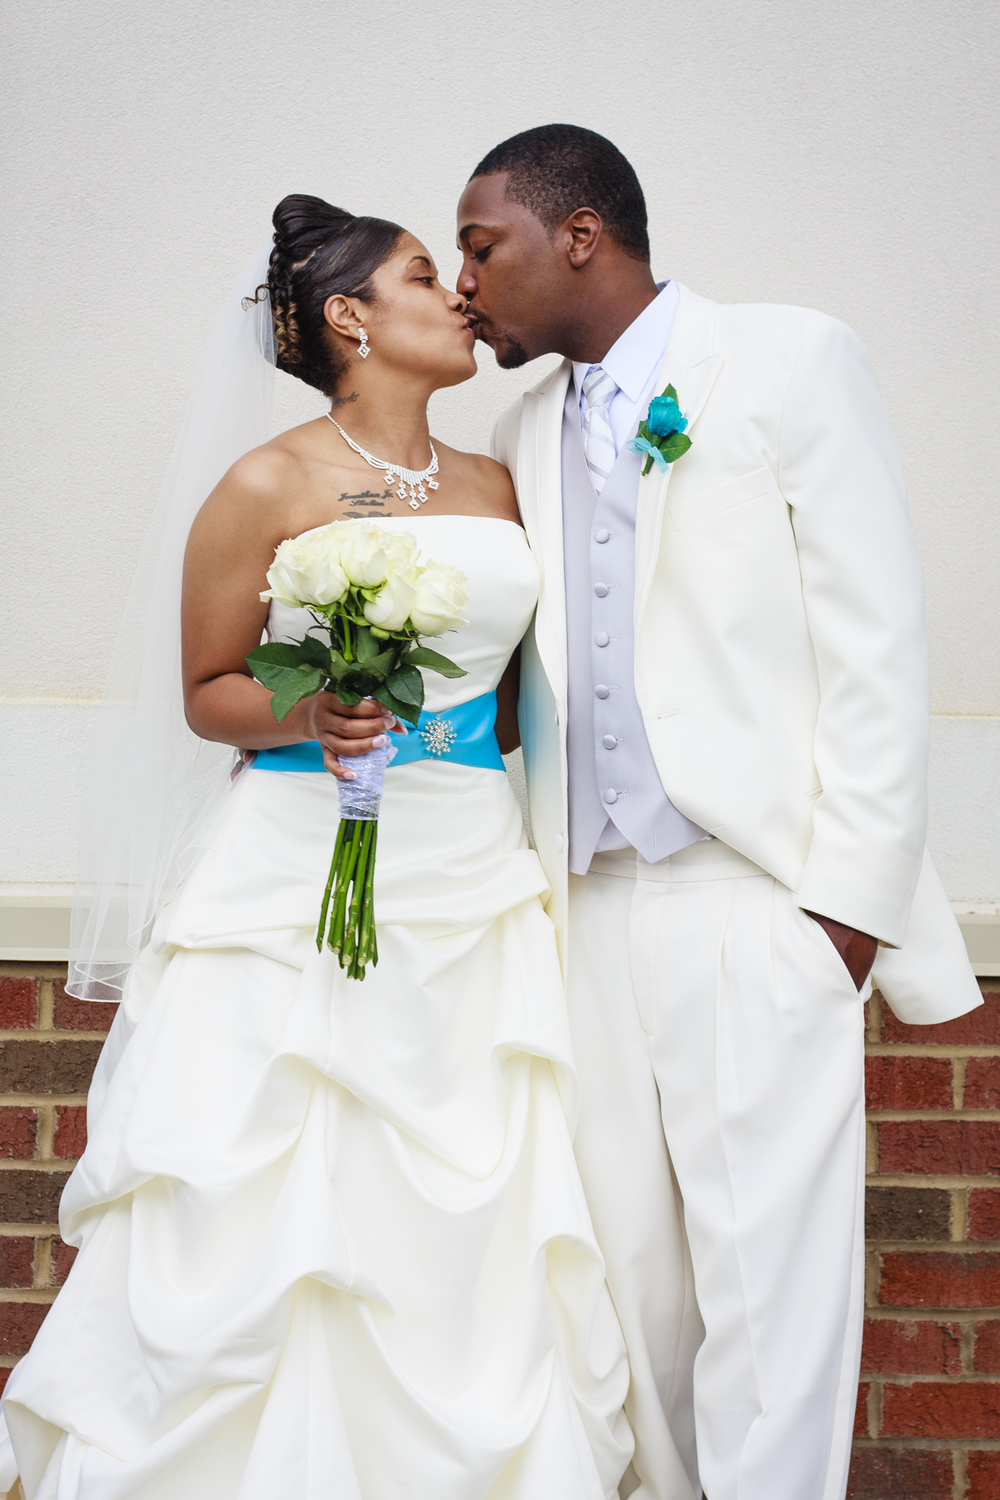 Wedding Photographer in Greensboro, NC